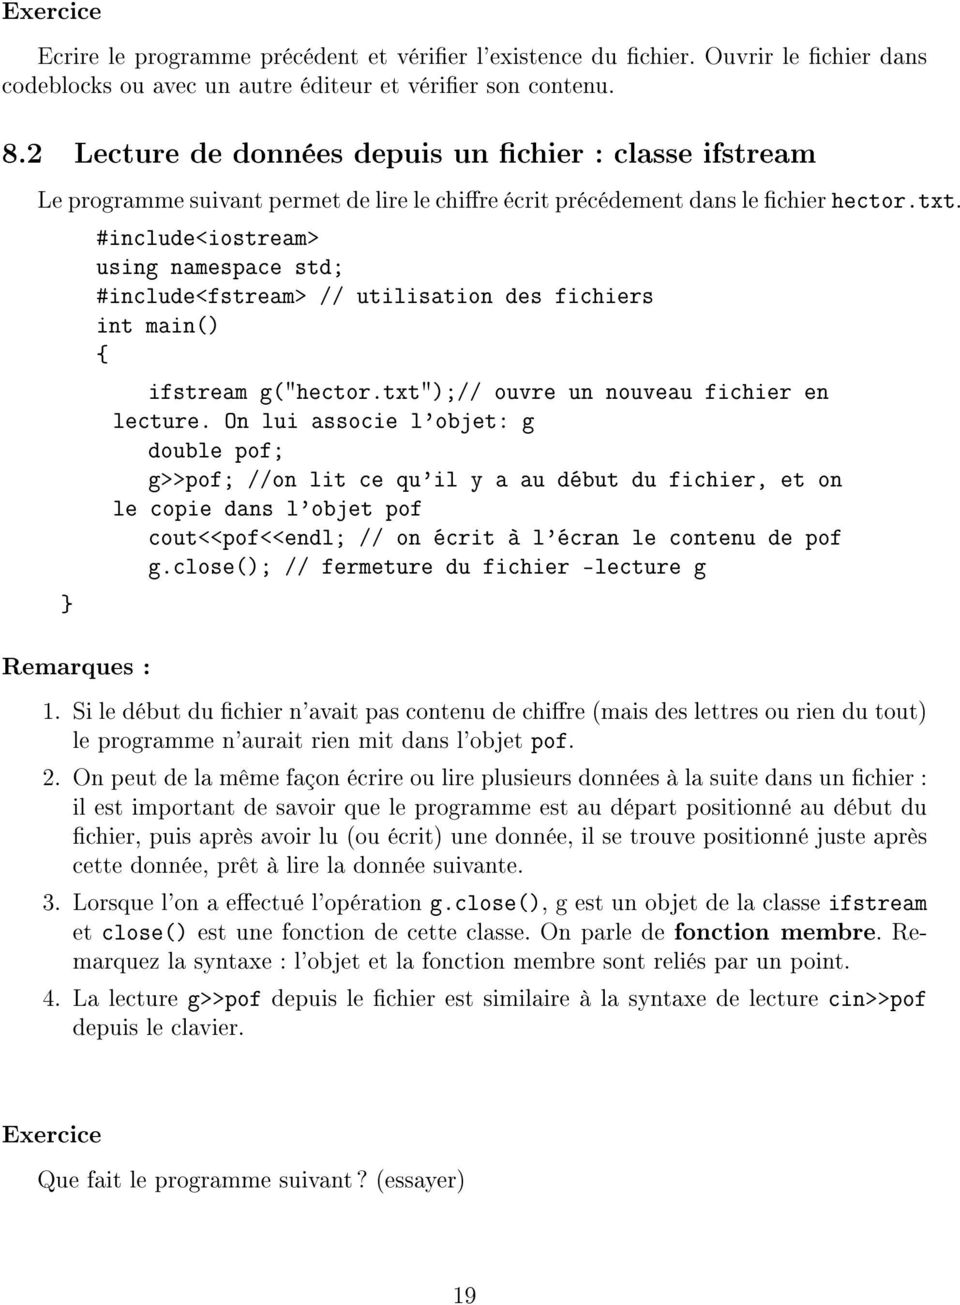 "Remarques : #include<iostream> #include<fstream> // utilisation des fichiers int main() ifstream g(""hector.txt"");// ouvre un nouveau fichier en lecture."